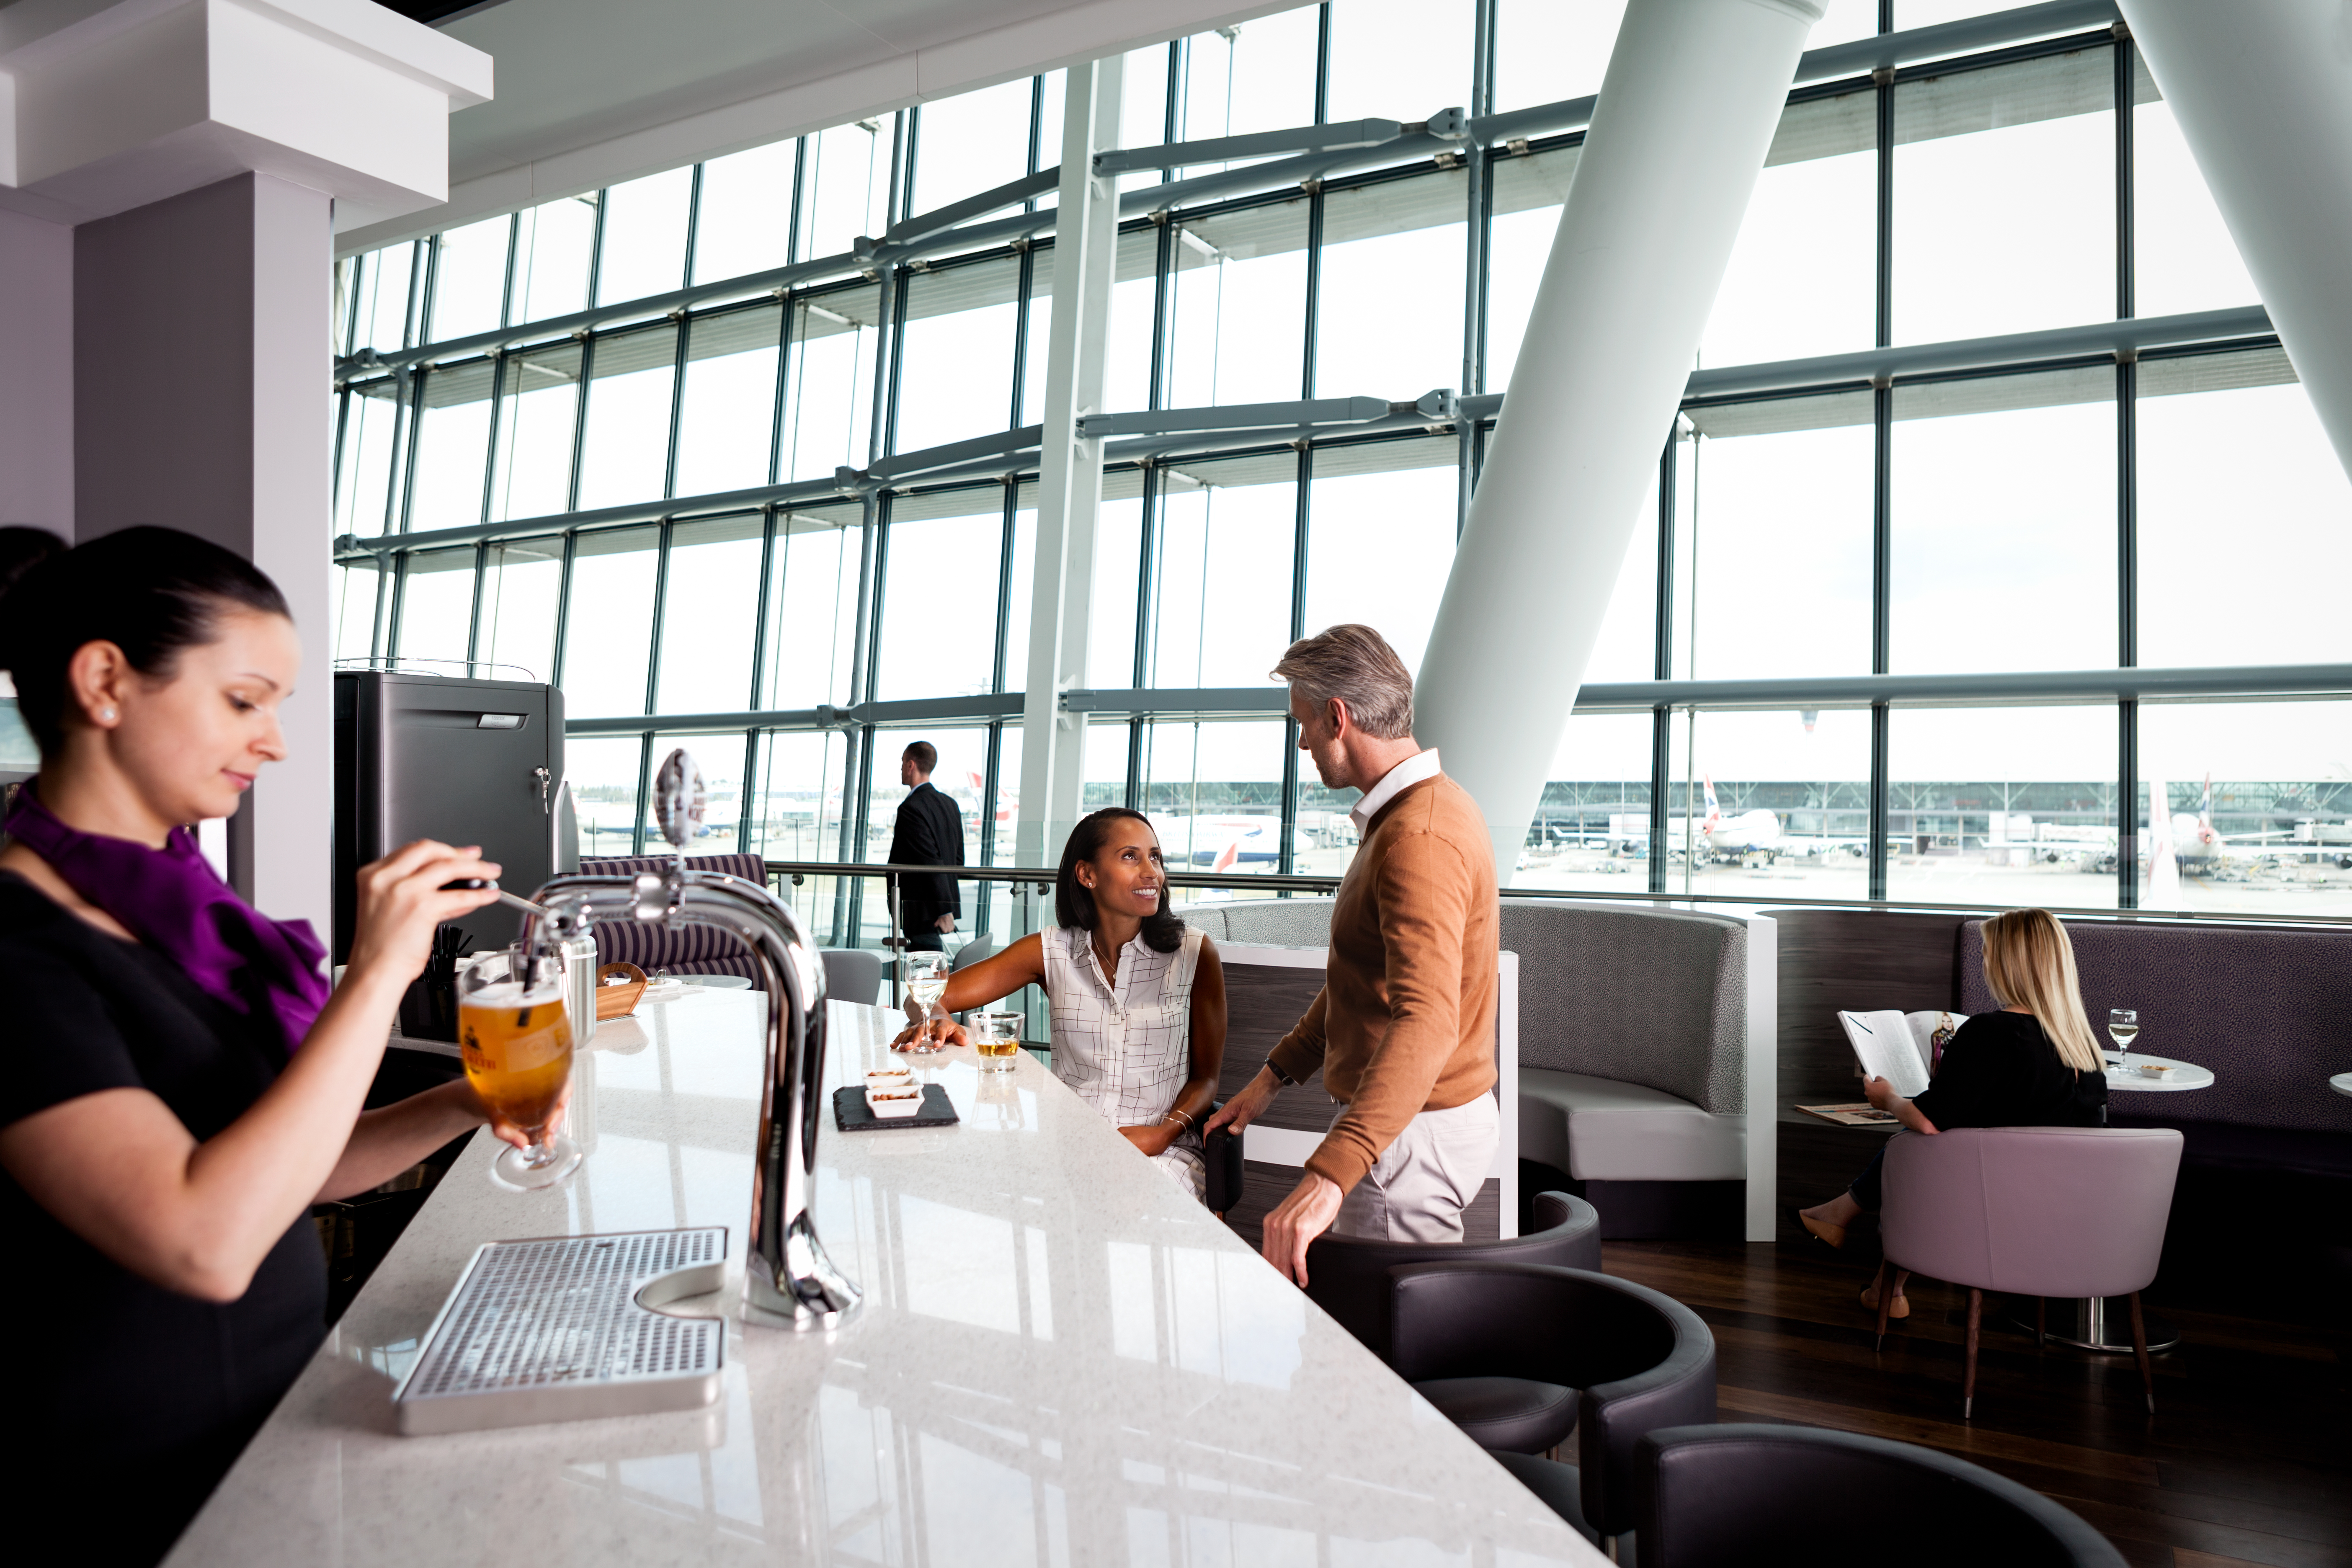 New pay for aspire lounge in london heathrow t5 for Salon priority pass